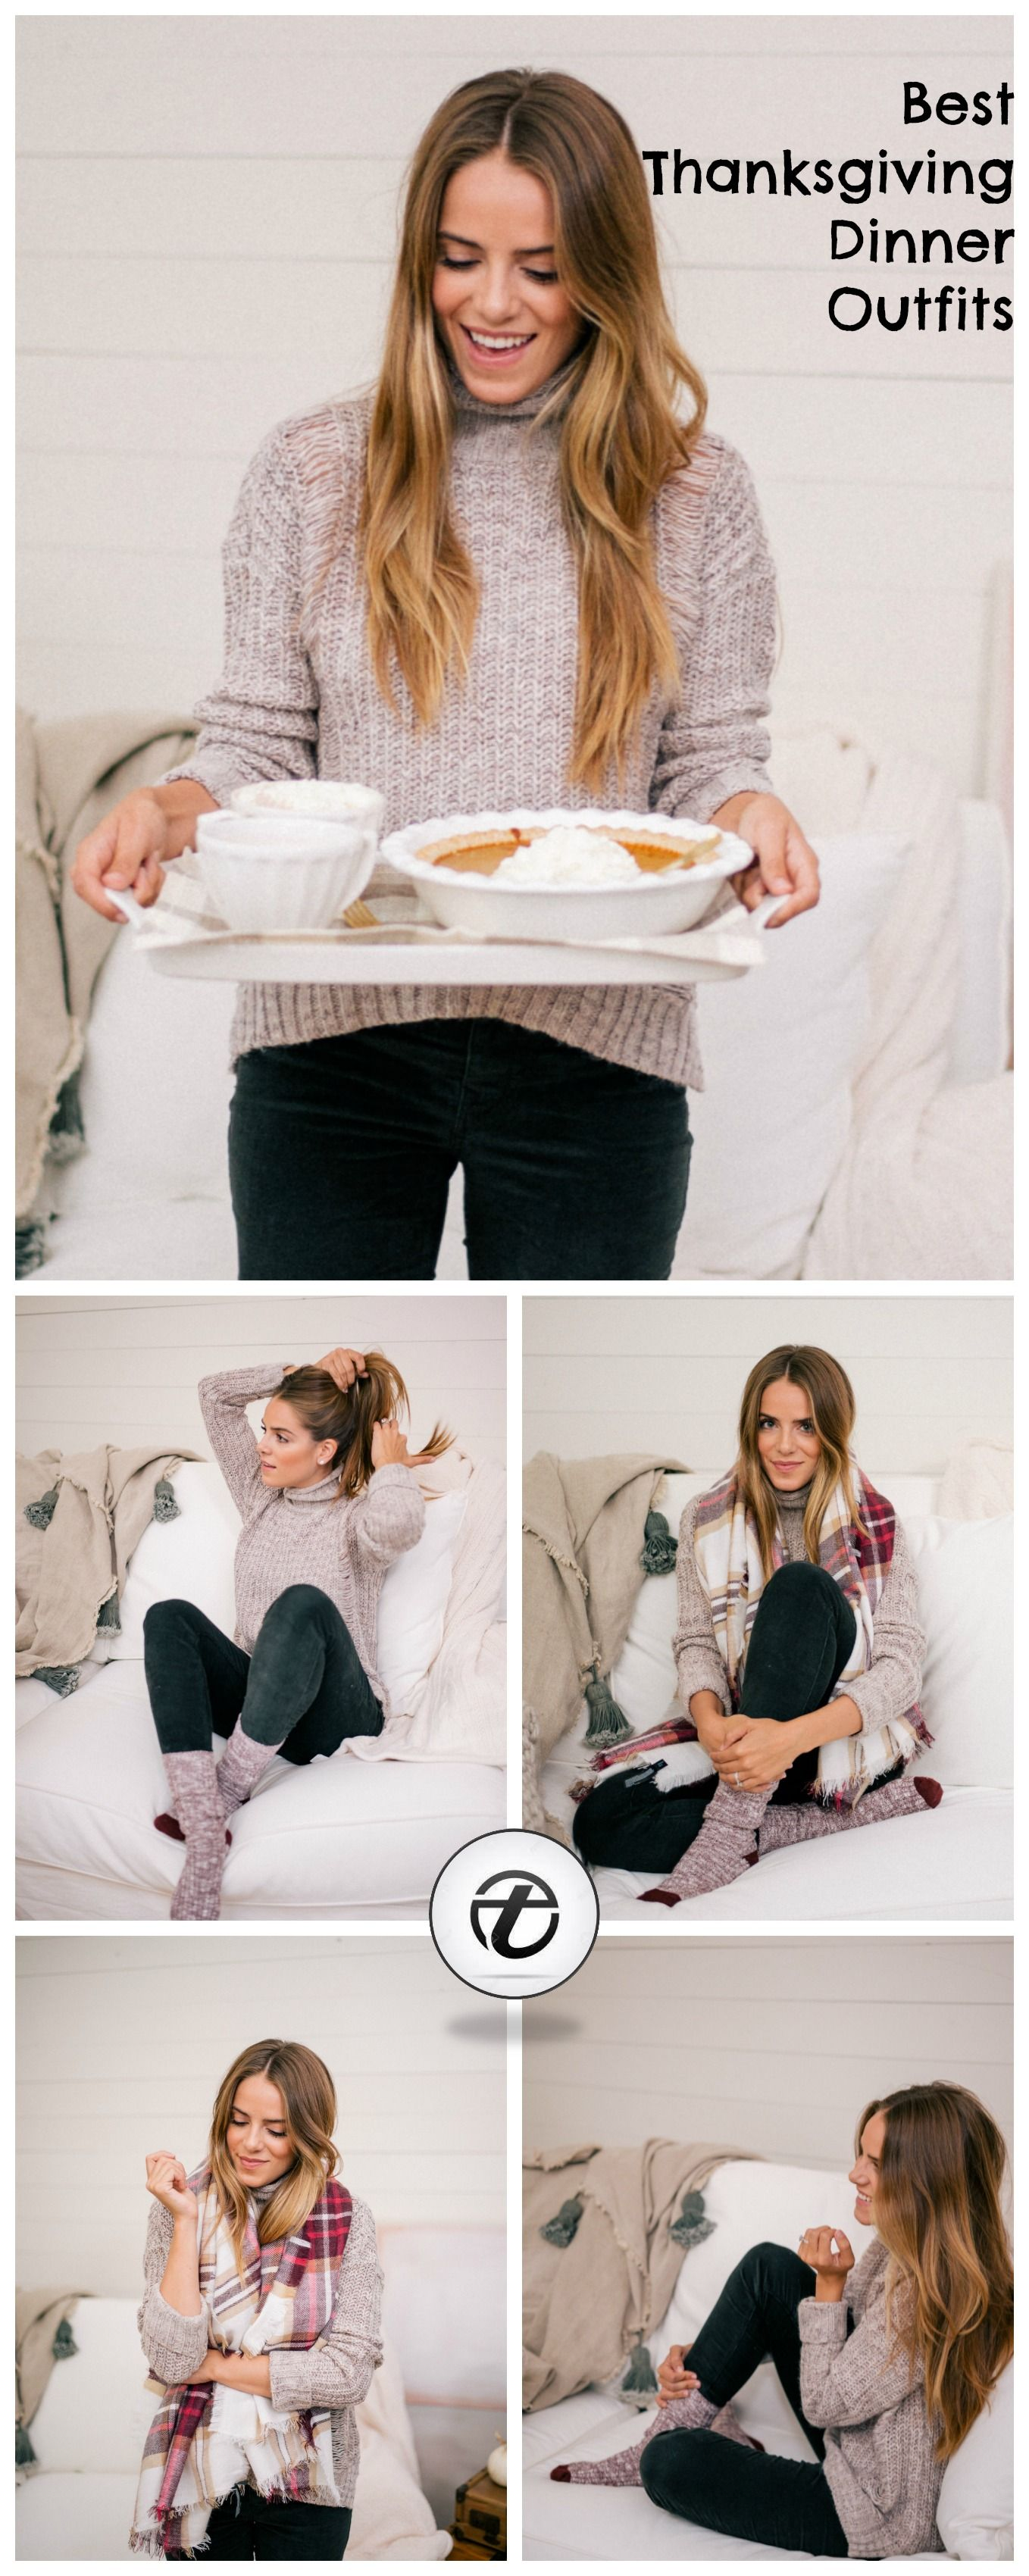 best-thanksgiving-dinner-outfits 2018 Thanksgiving Outfits Ideas-30 Ways to Dress up on Thanksgiving